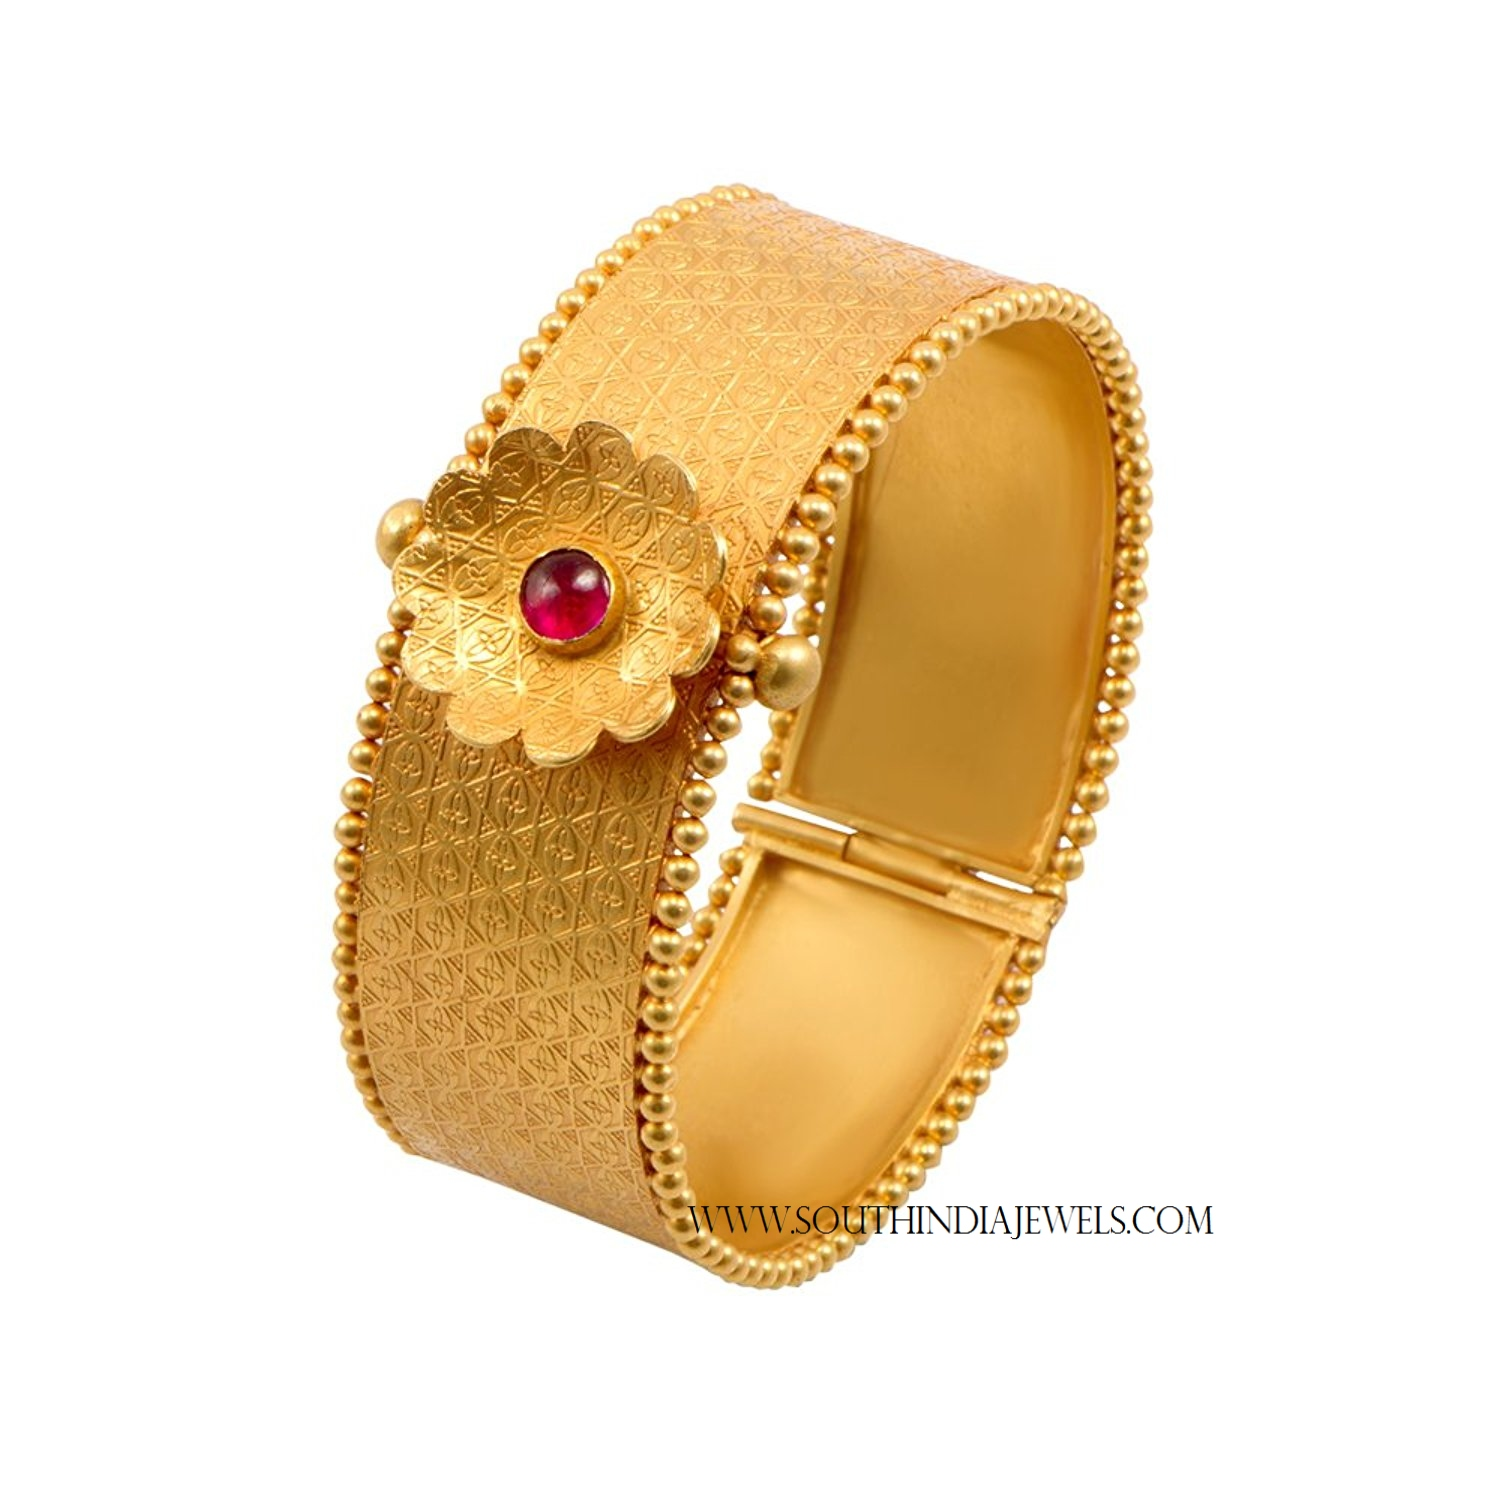 Joy Alukkas Gold Bangles Designs With Price South India